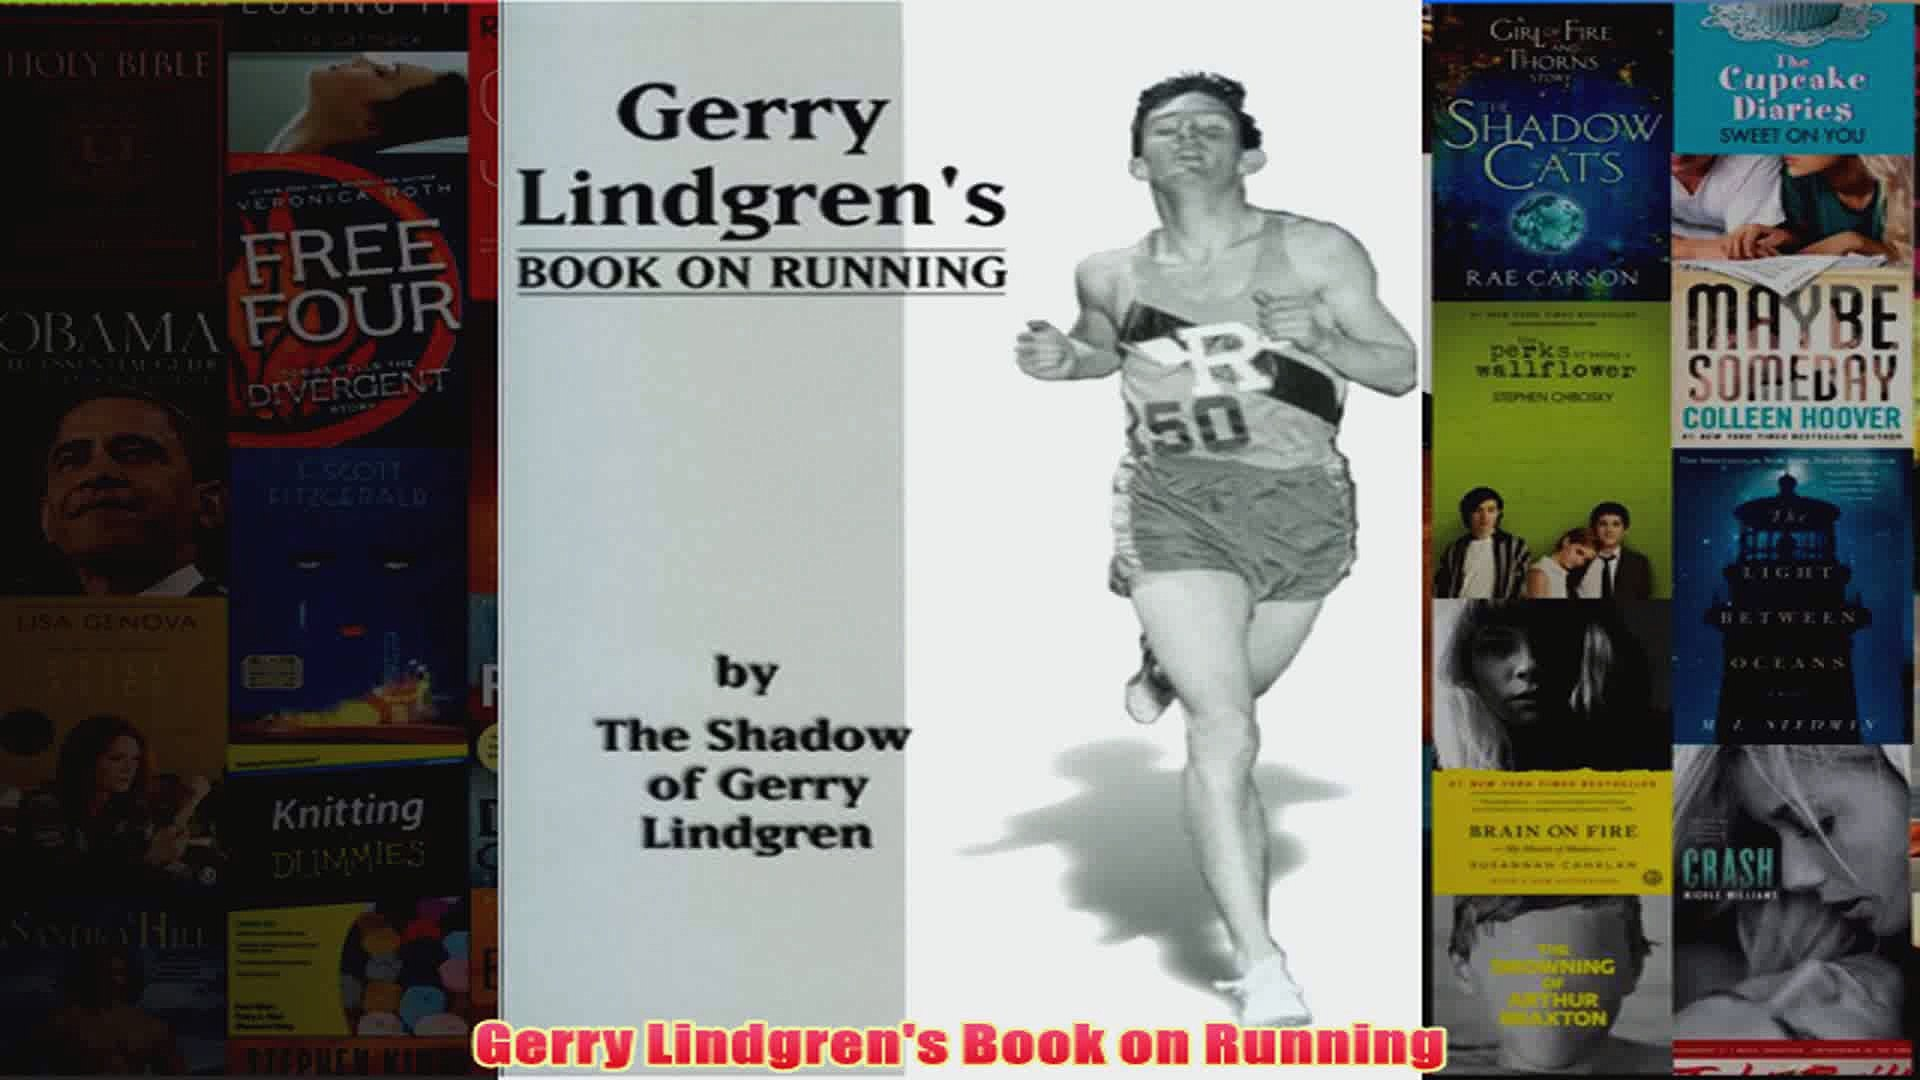 Gerry Lindgrens Book on Running